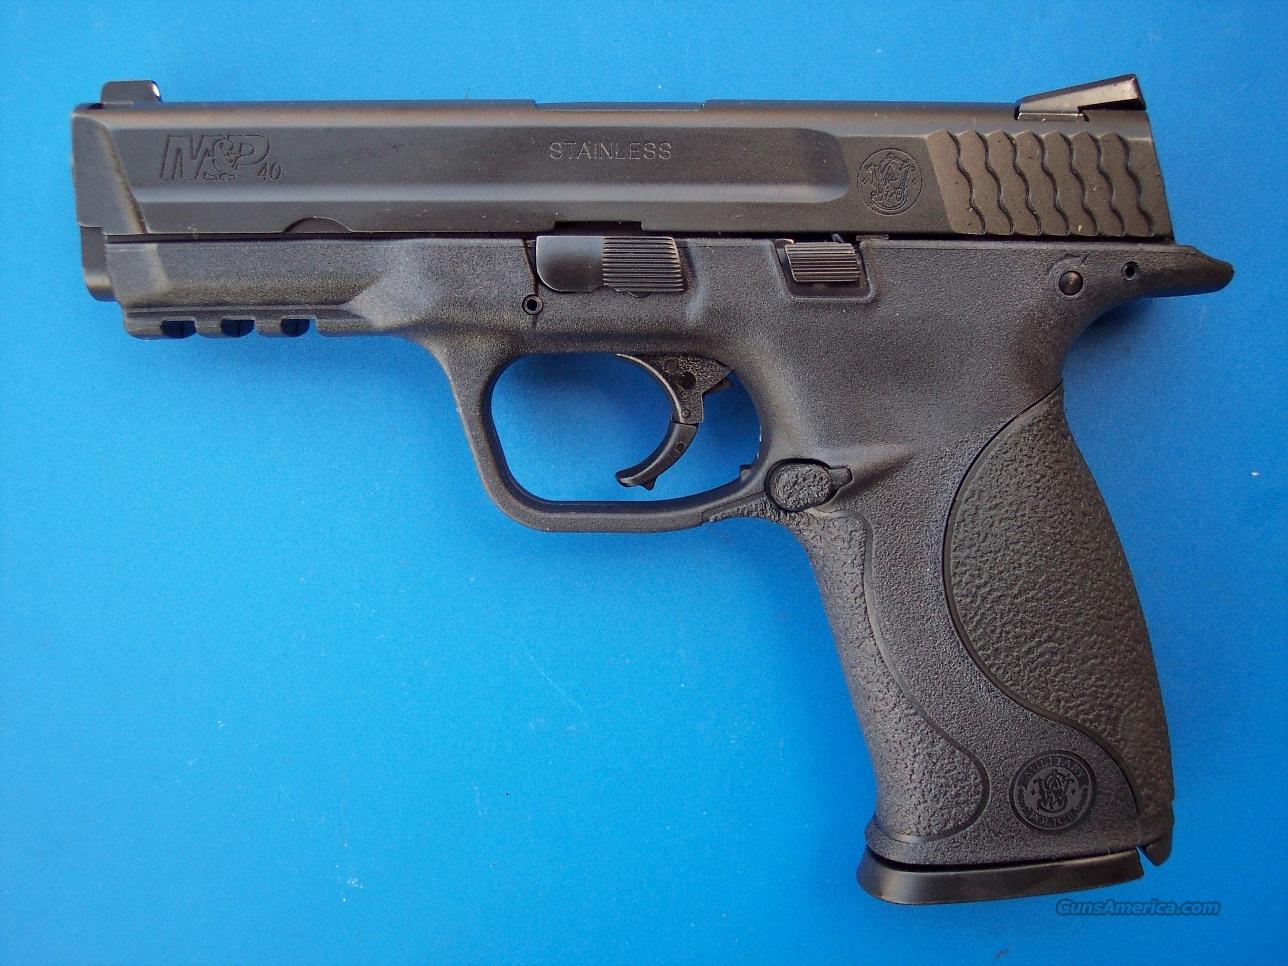 Smith & Wesson M&P 9mm Hi-Cap mags NEW  Guns > Pistols > Smith & Wesson Pistols - Autos > Polymer Frame